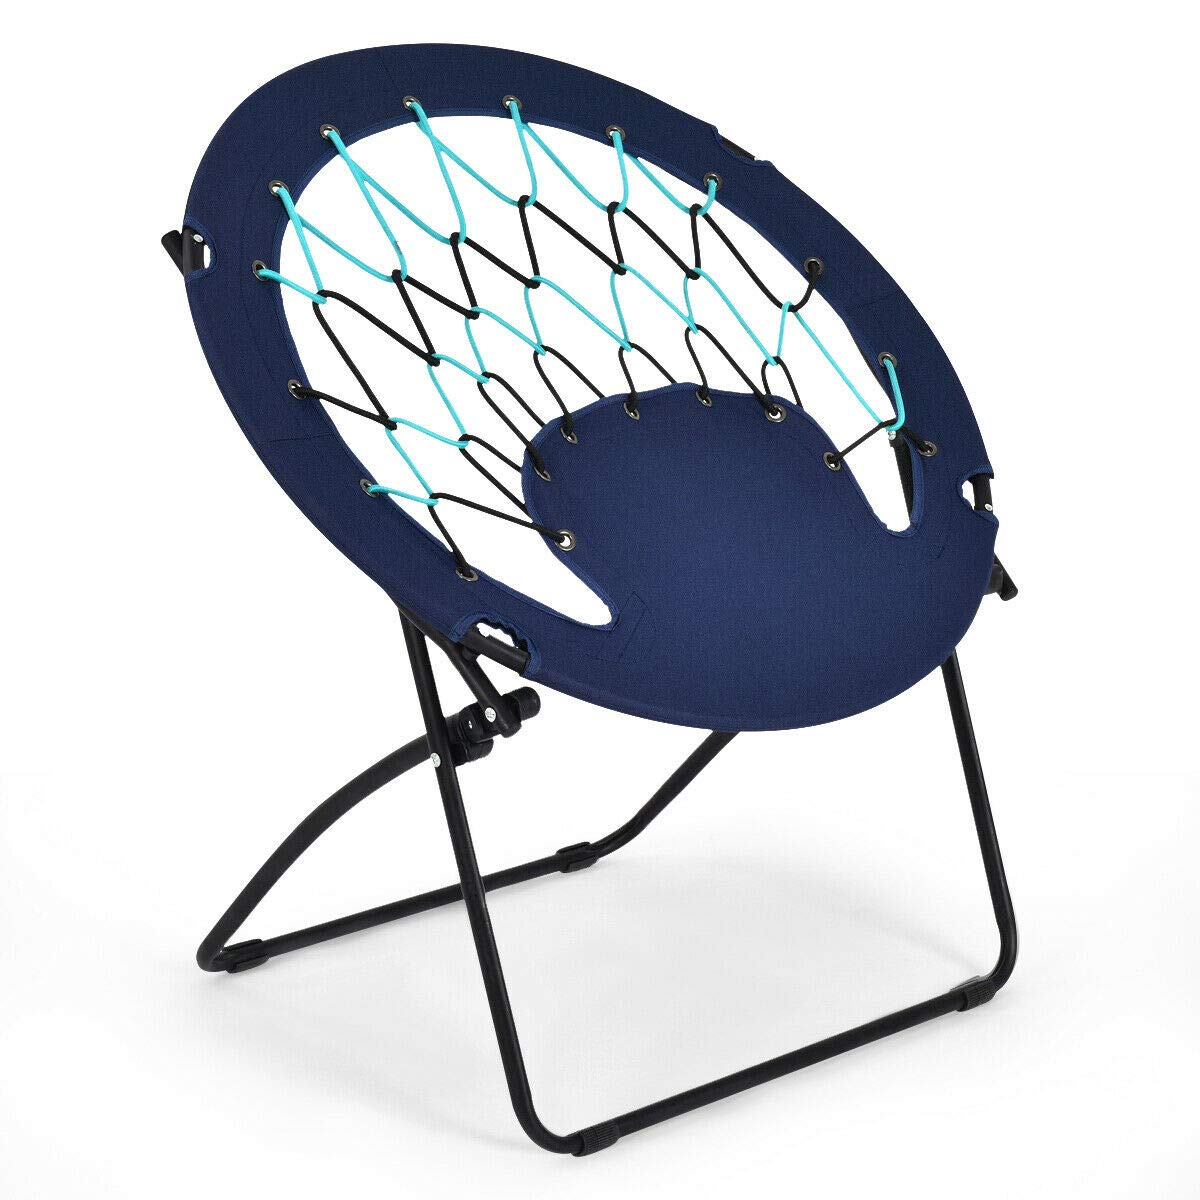 MAI Folding Round Bungee Chair Steel Frame Outdoor Camping Hiking Garden Patio Blue by MAI